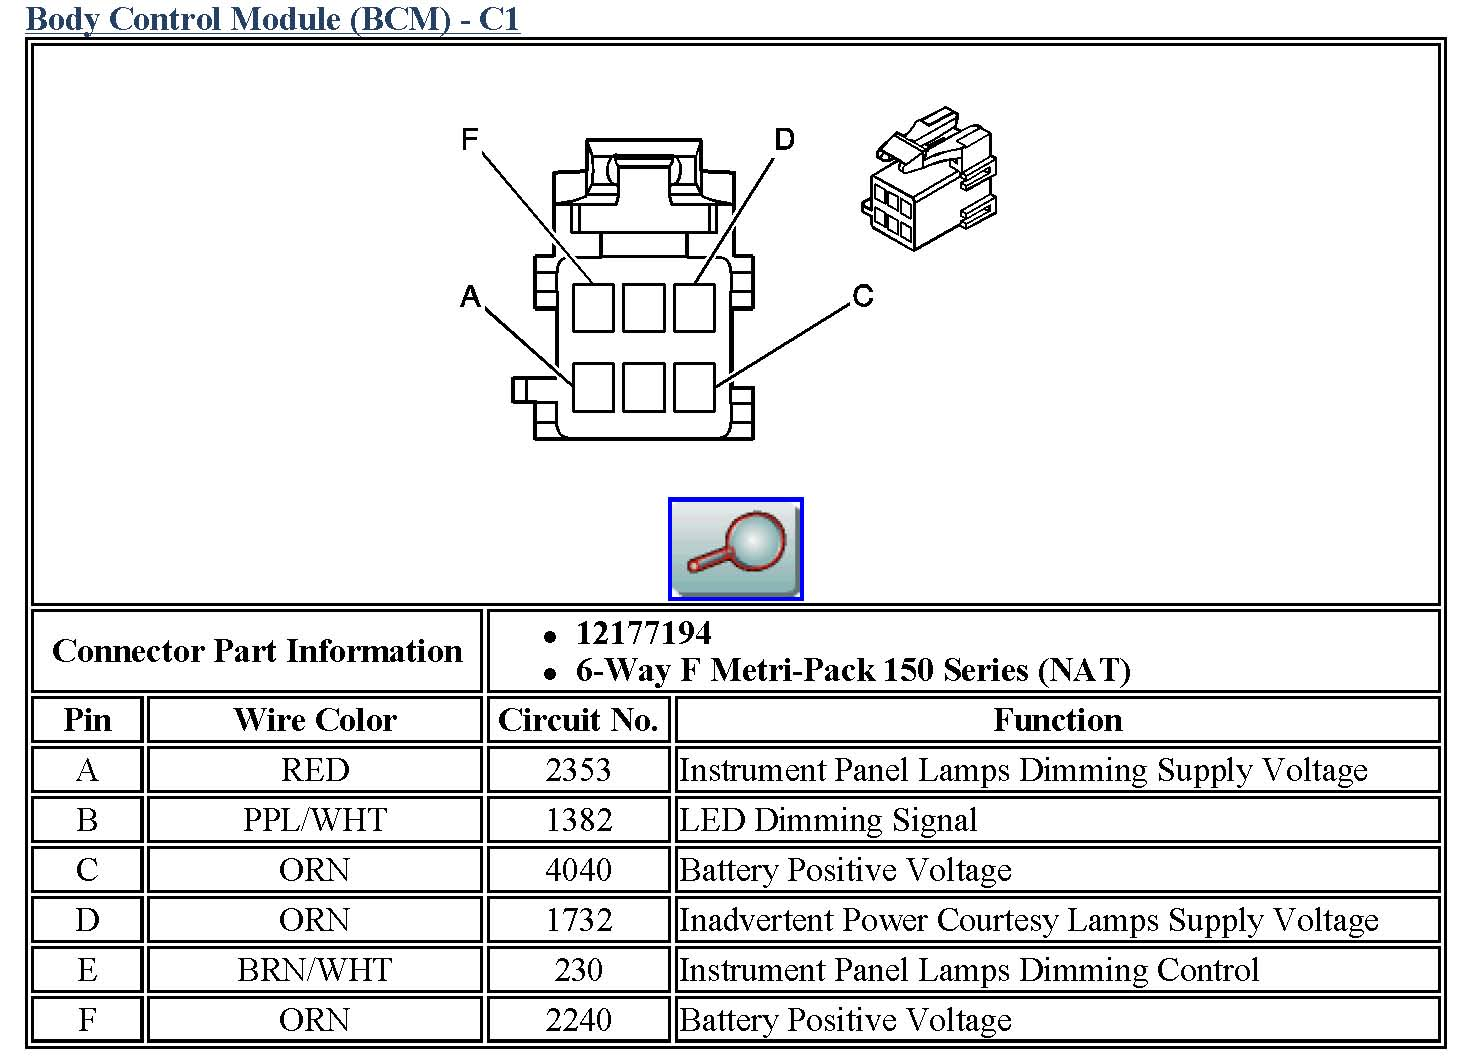 Bcm Wiring Diagram 2014 | Electronic Schematics collections on 2008 chrysler 300 wiring diagram, 2008 acura tl wiring diagram, 2008 chevrolet wiring diagram, 2008 volkswagen beetle wiring diagram, 2007 chevy silverado door lock diagram, 2008 buick enclave wiring diagram, 2008 ford mustang wiring diagram, 2008 ford crown victoria wiring diagram, 2008 tahoe wiring diagram, 2008 chrysler pacifica wiring diagram, 2008 cadillac cts wiring diagram, 2008 mazda 6 wiring diagram, 2008 nissan armada wiring diagram, 2008 gmc wiring diagram, 2008 ford super duty wiring diagram, 2008 subaru impreza wiring diagram, 1995 chevy 4x4 wiring diagram, 2007 chevy 3500 trailer wiring diagram, chevy 1500 wiring diagram, 2008 ford explorer wiring diagram,